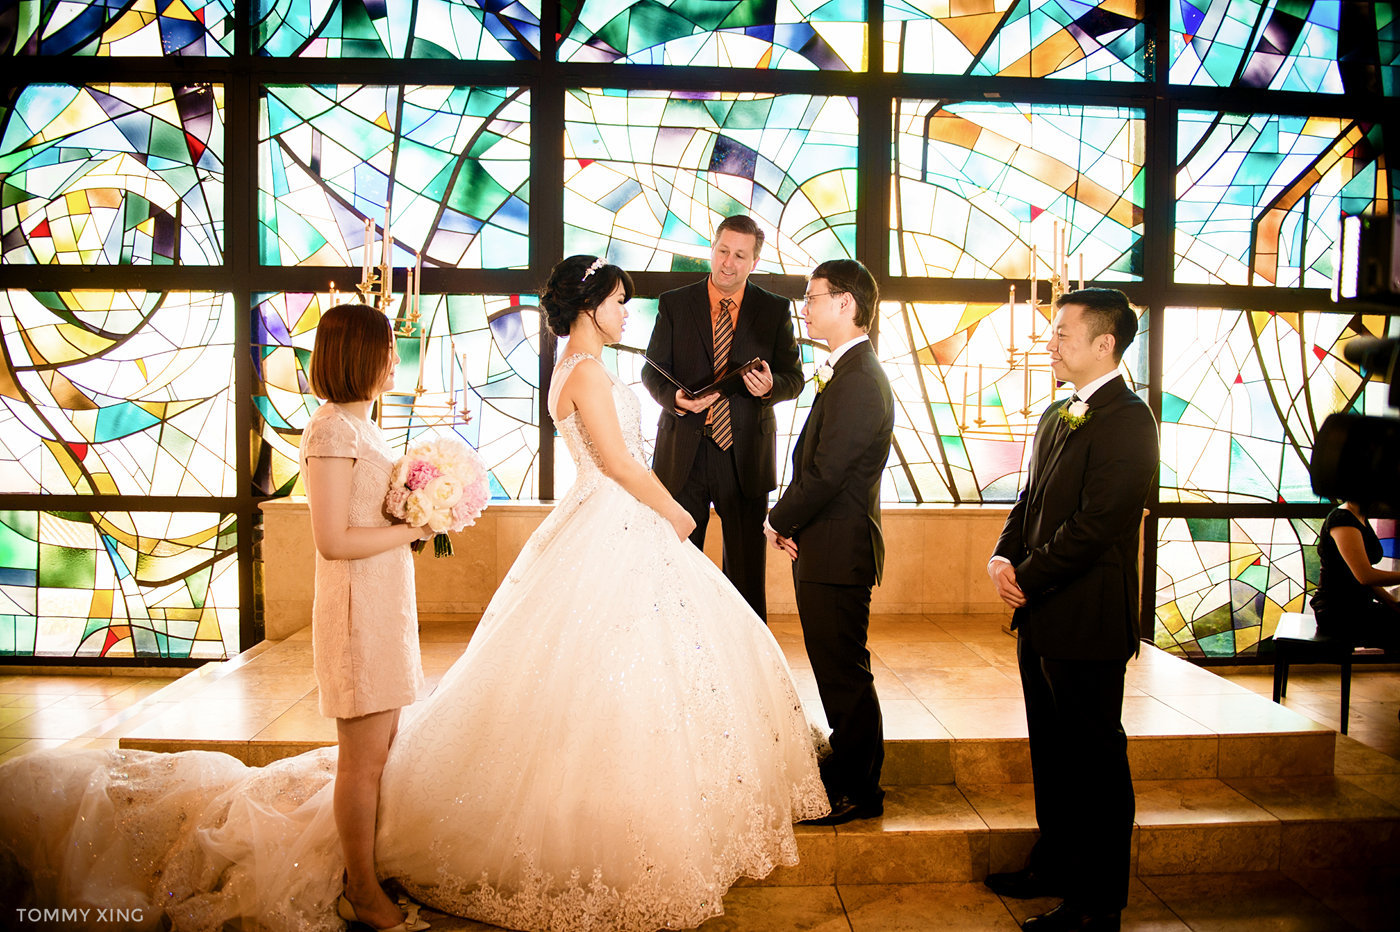 Qinglu Meng & Daozheng Chen Wedding Slideshow-157-E.JPG